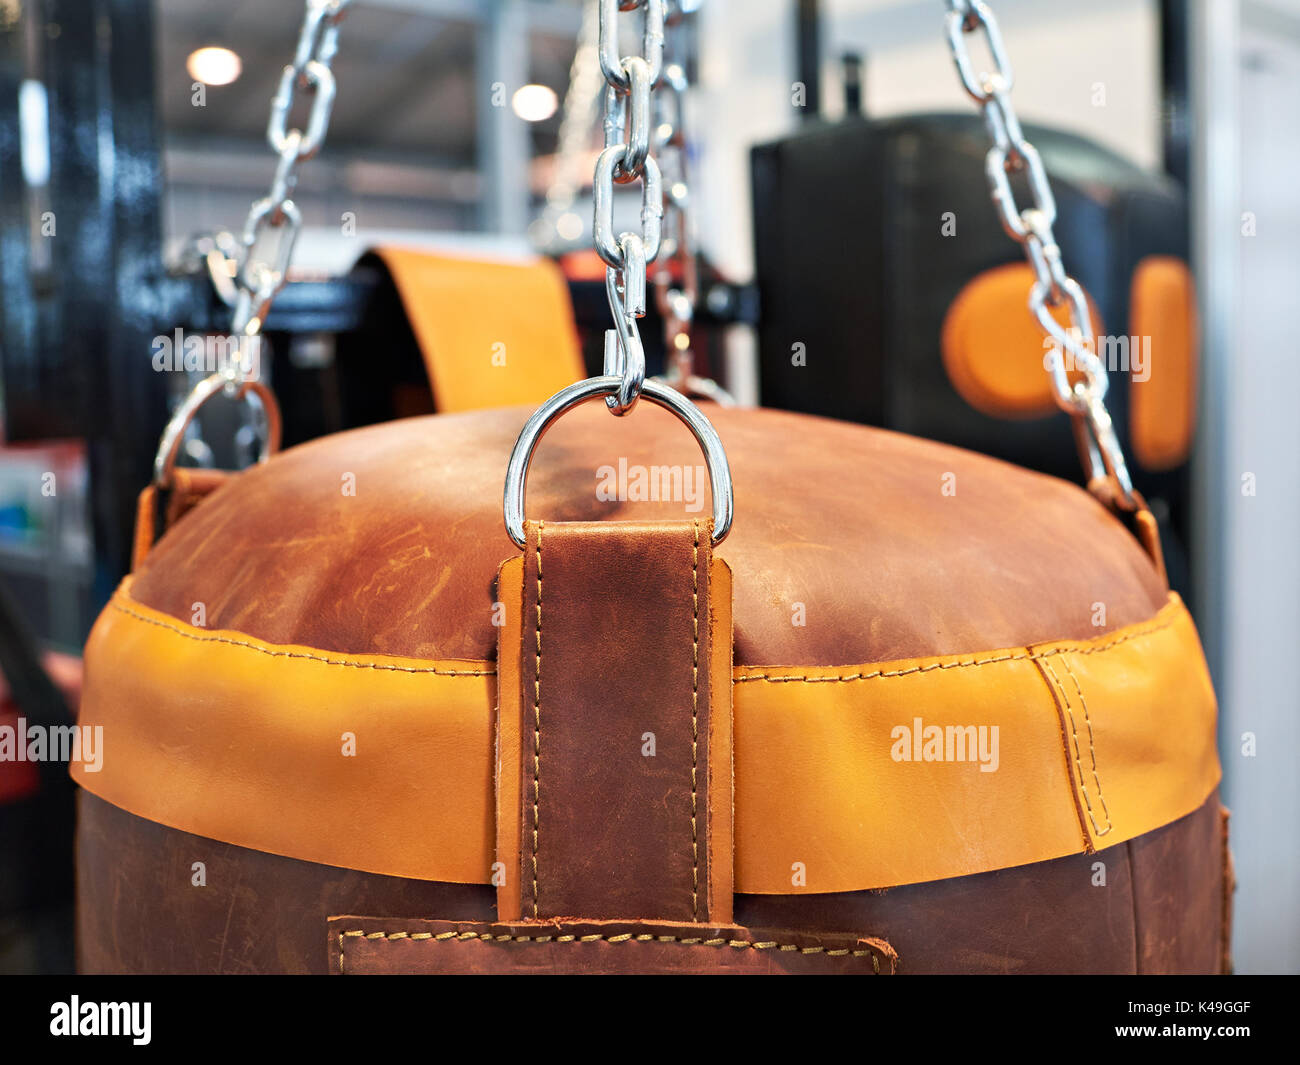 Leather Punching bag on chains - Stock Image